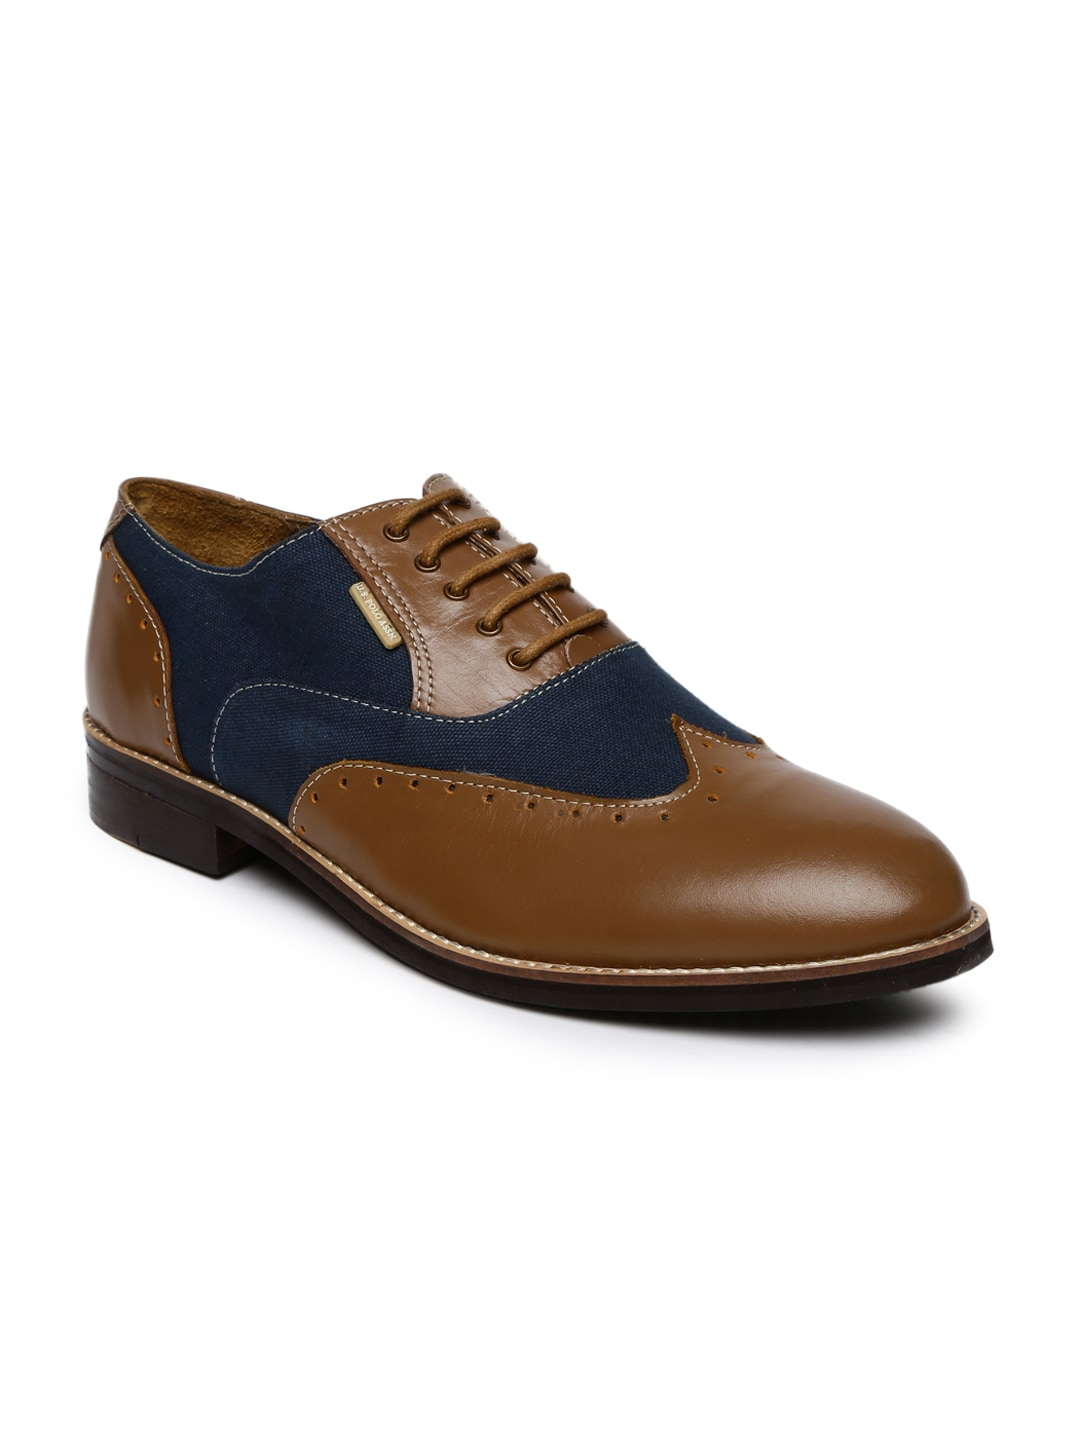 1ebdfafc0722 Footwear - Shop for Men